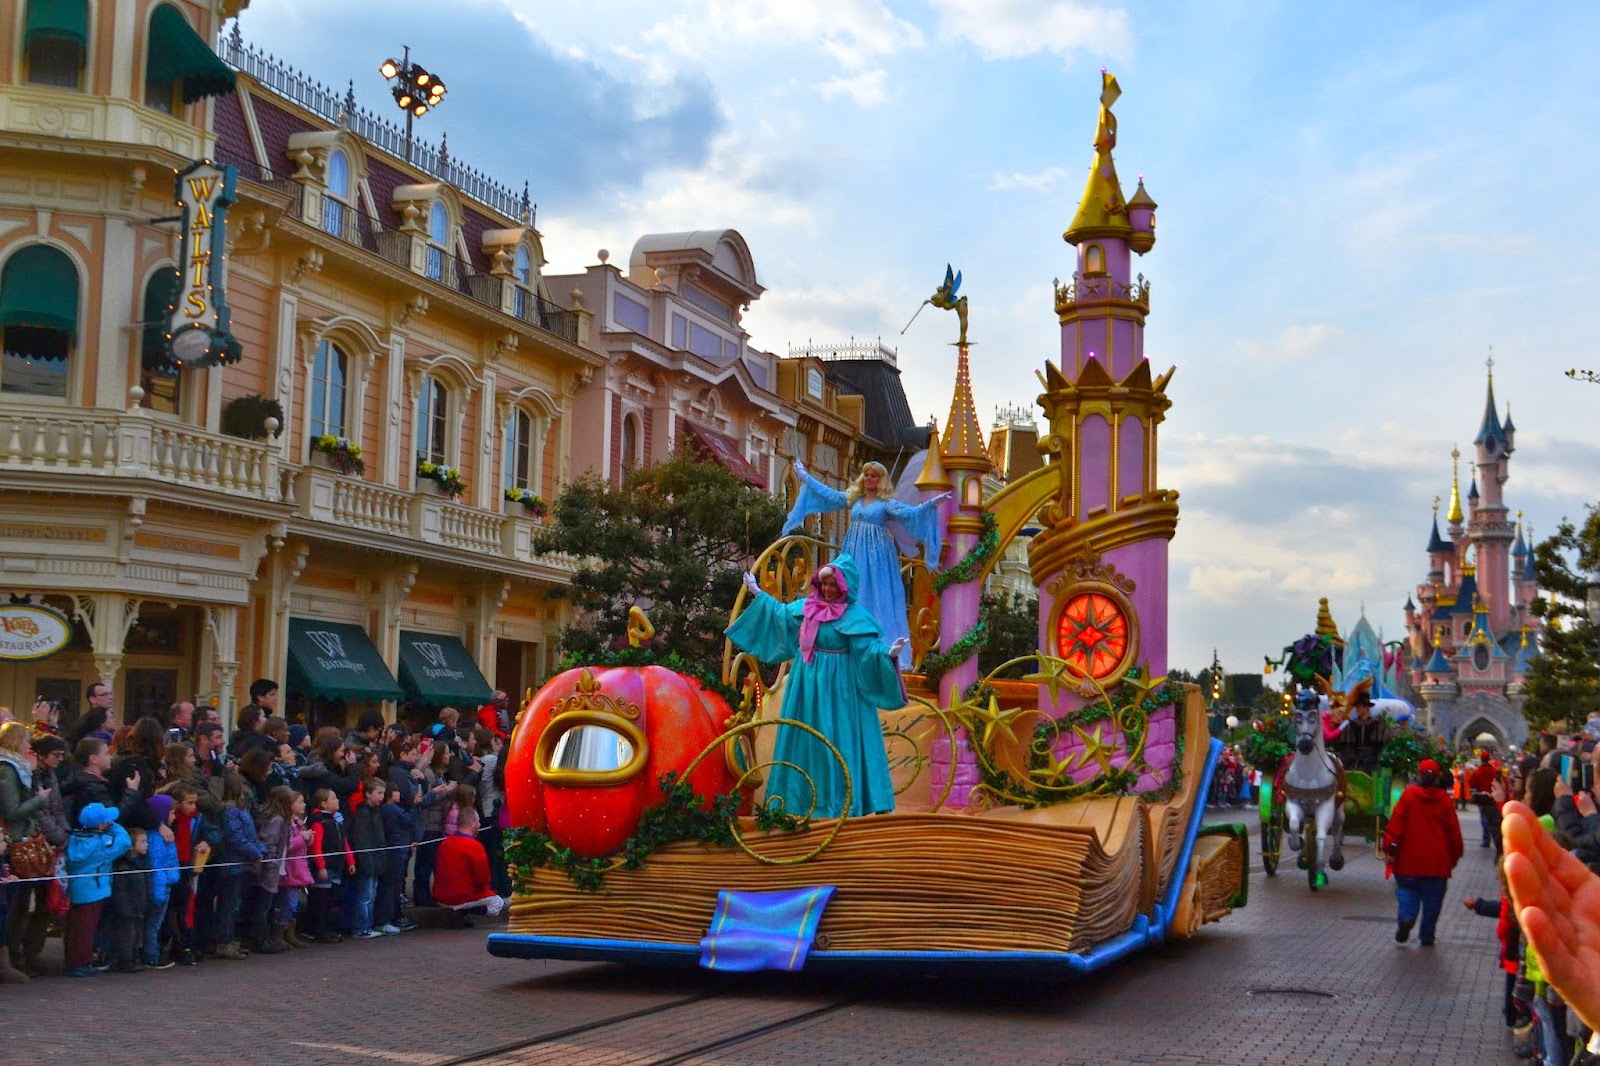 the sleeping beauty float in the Disneyland parade the fairy god mother can be seen at the front with sleeping beauty standing behind